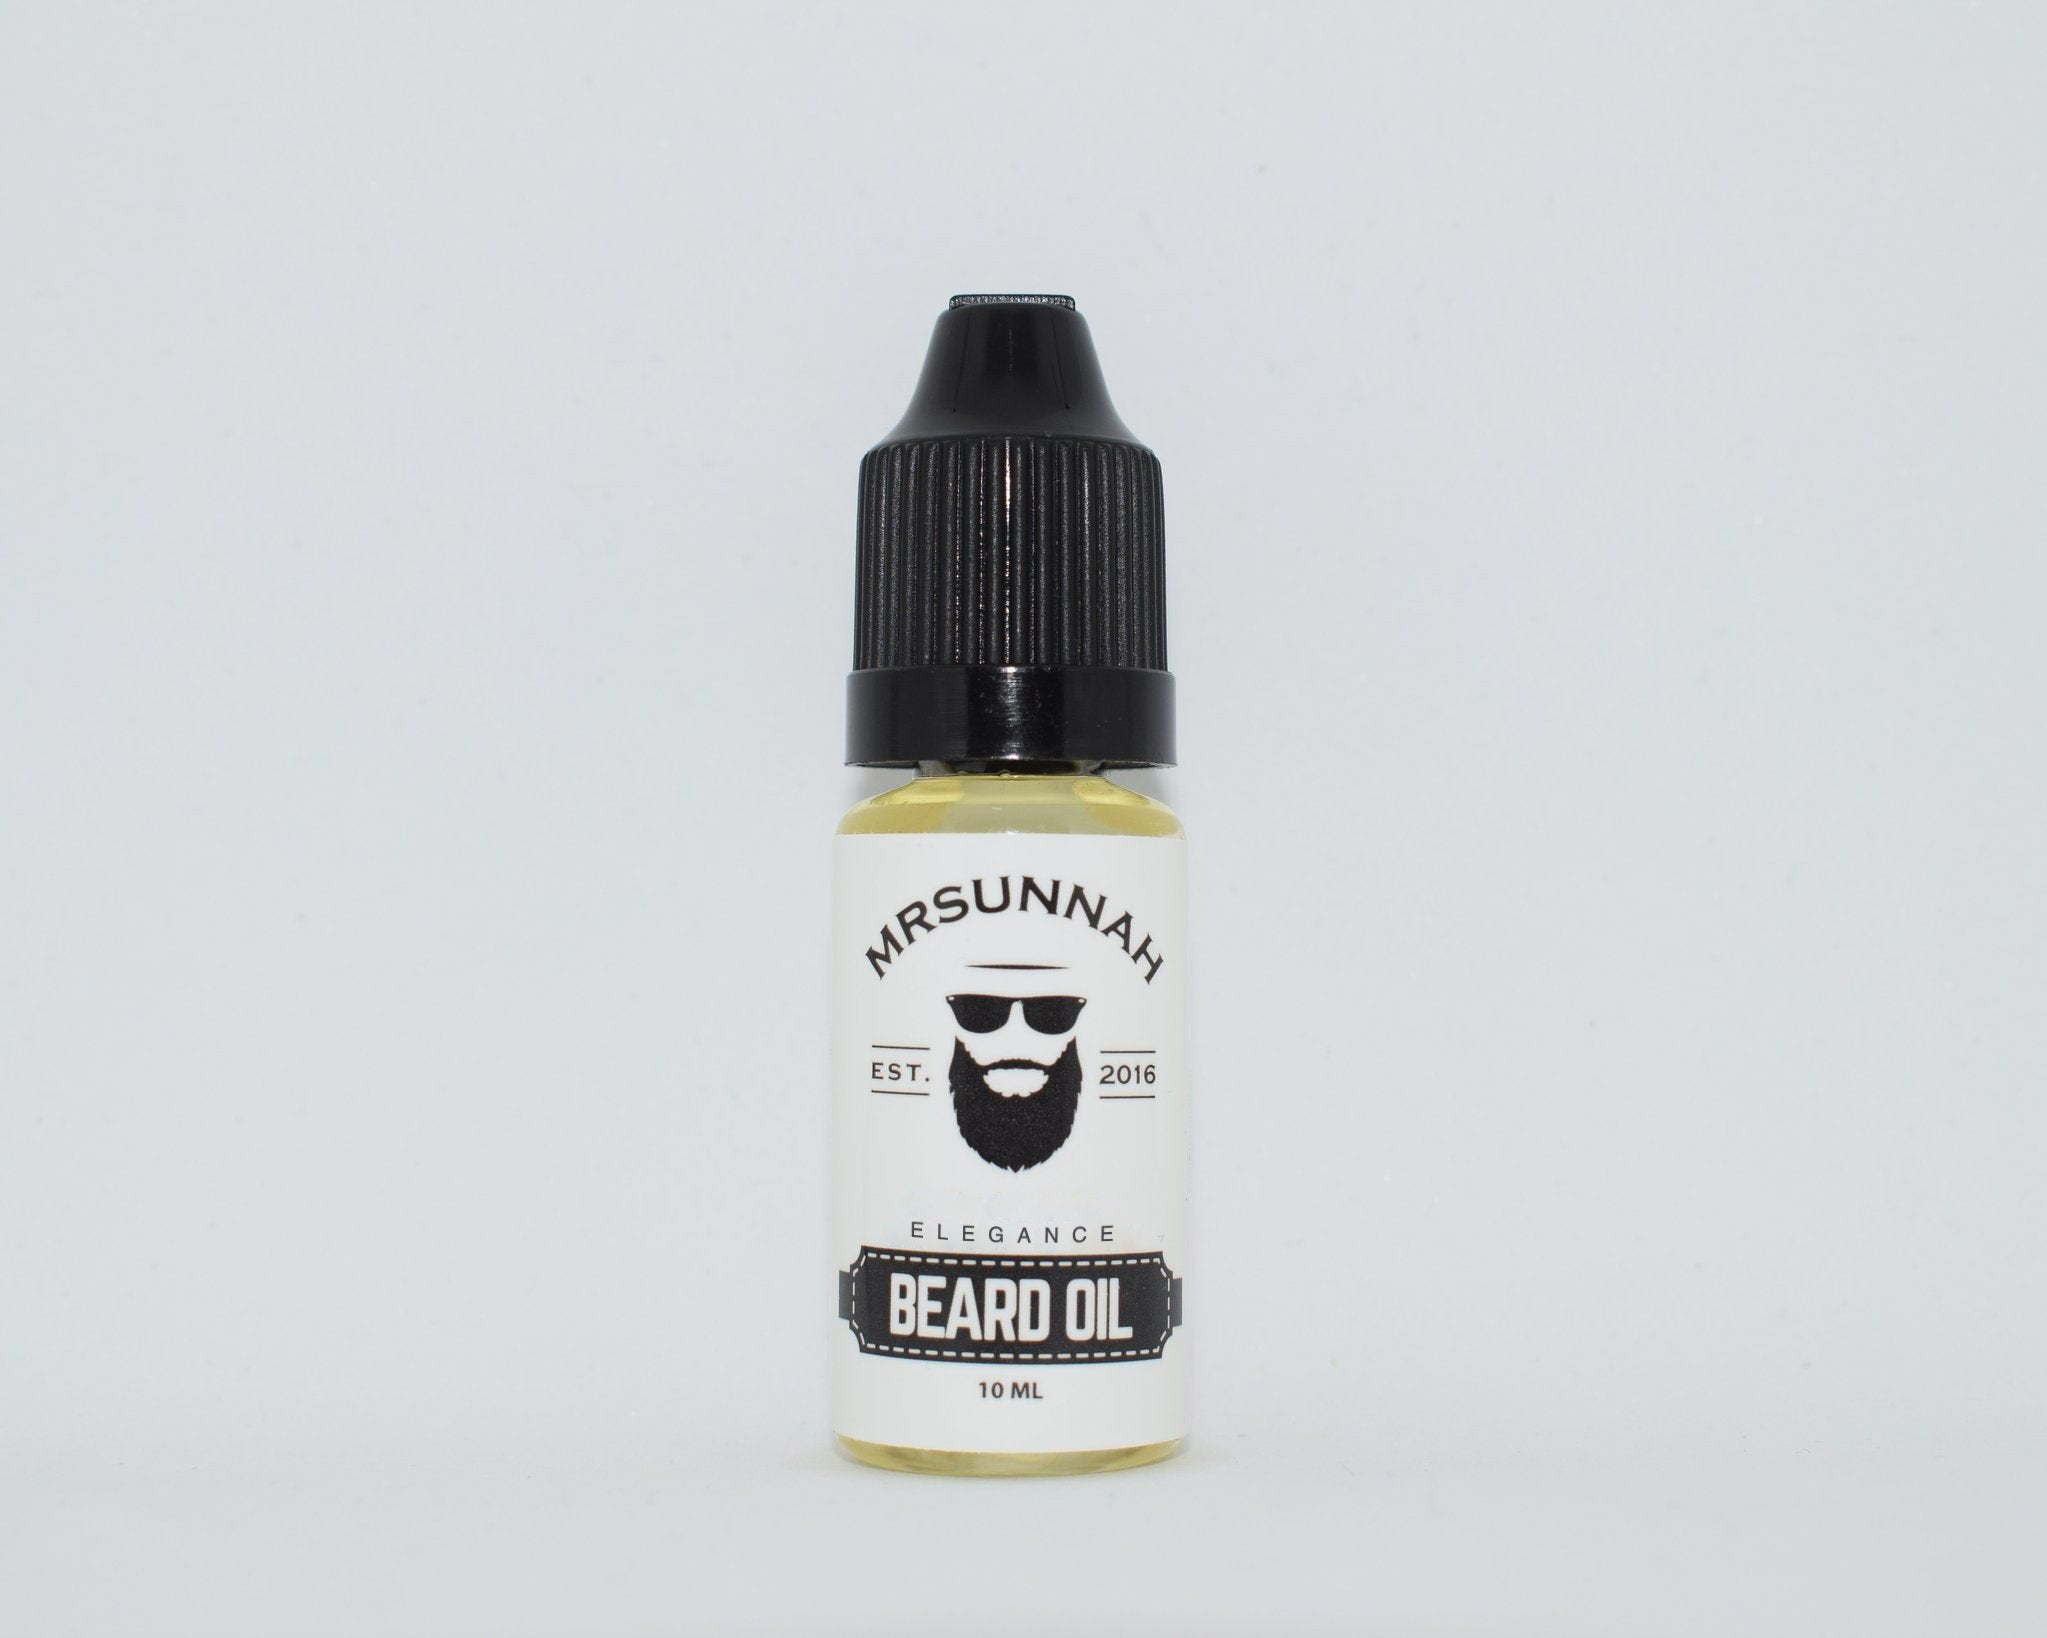 Elegance Beard Oil  (10ml) - Mrsunnah Grooming Co